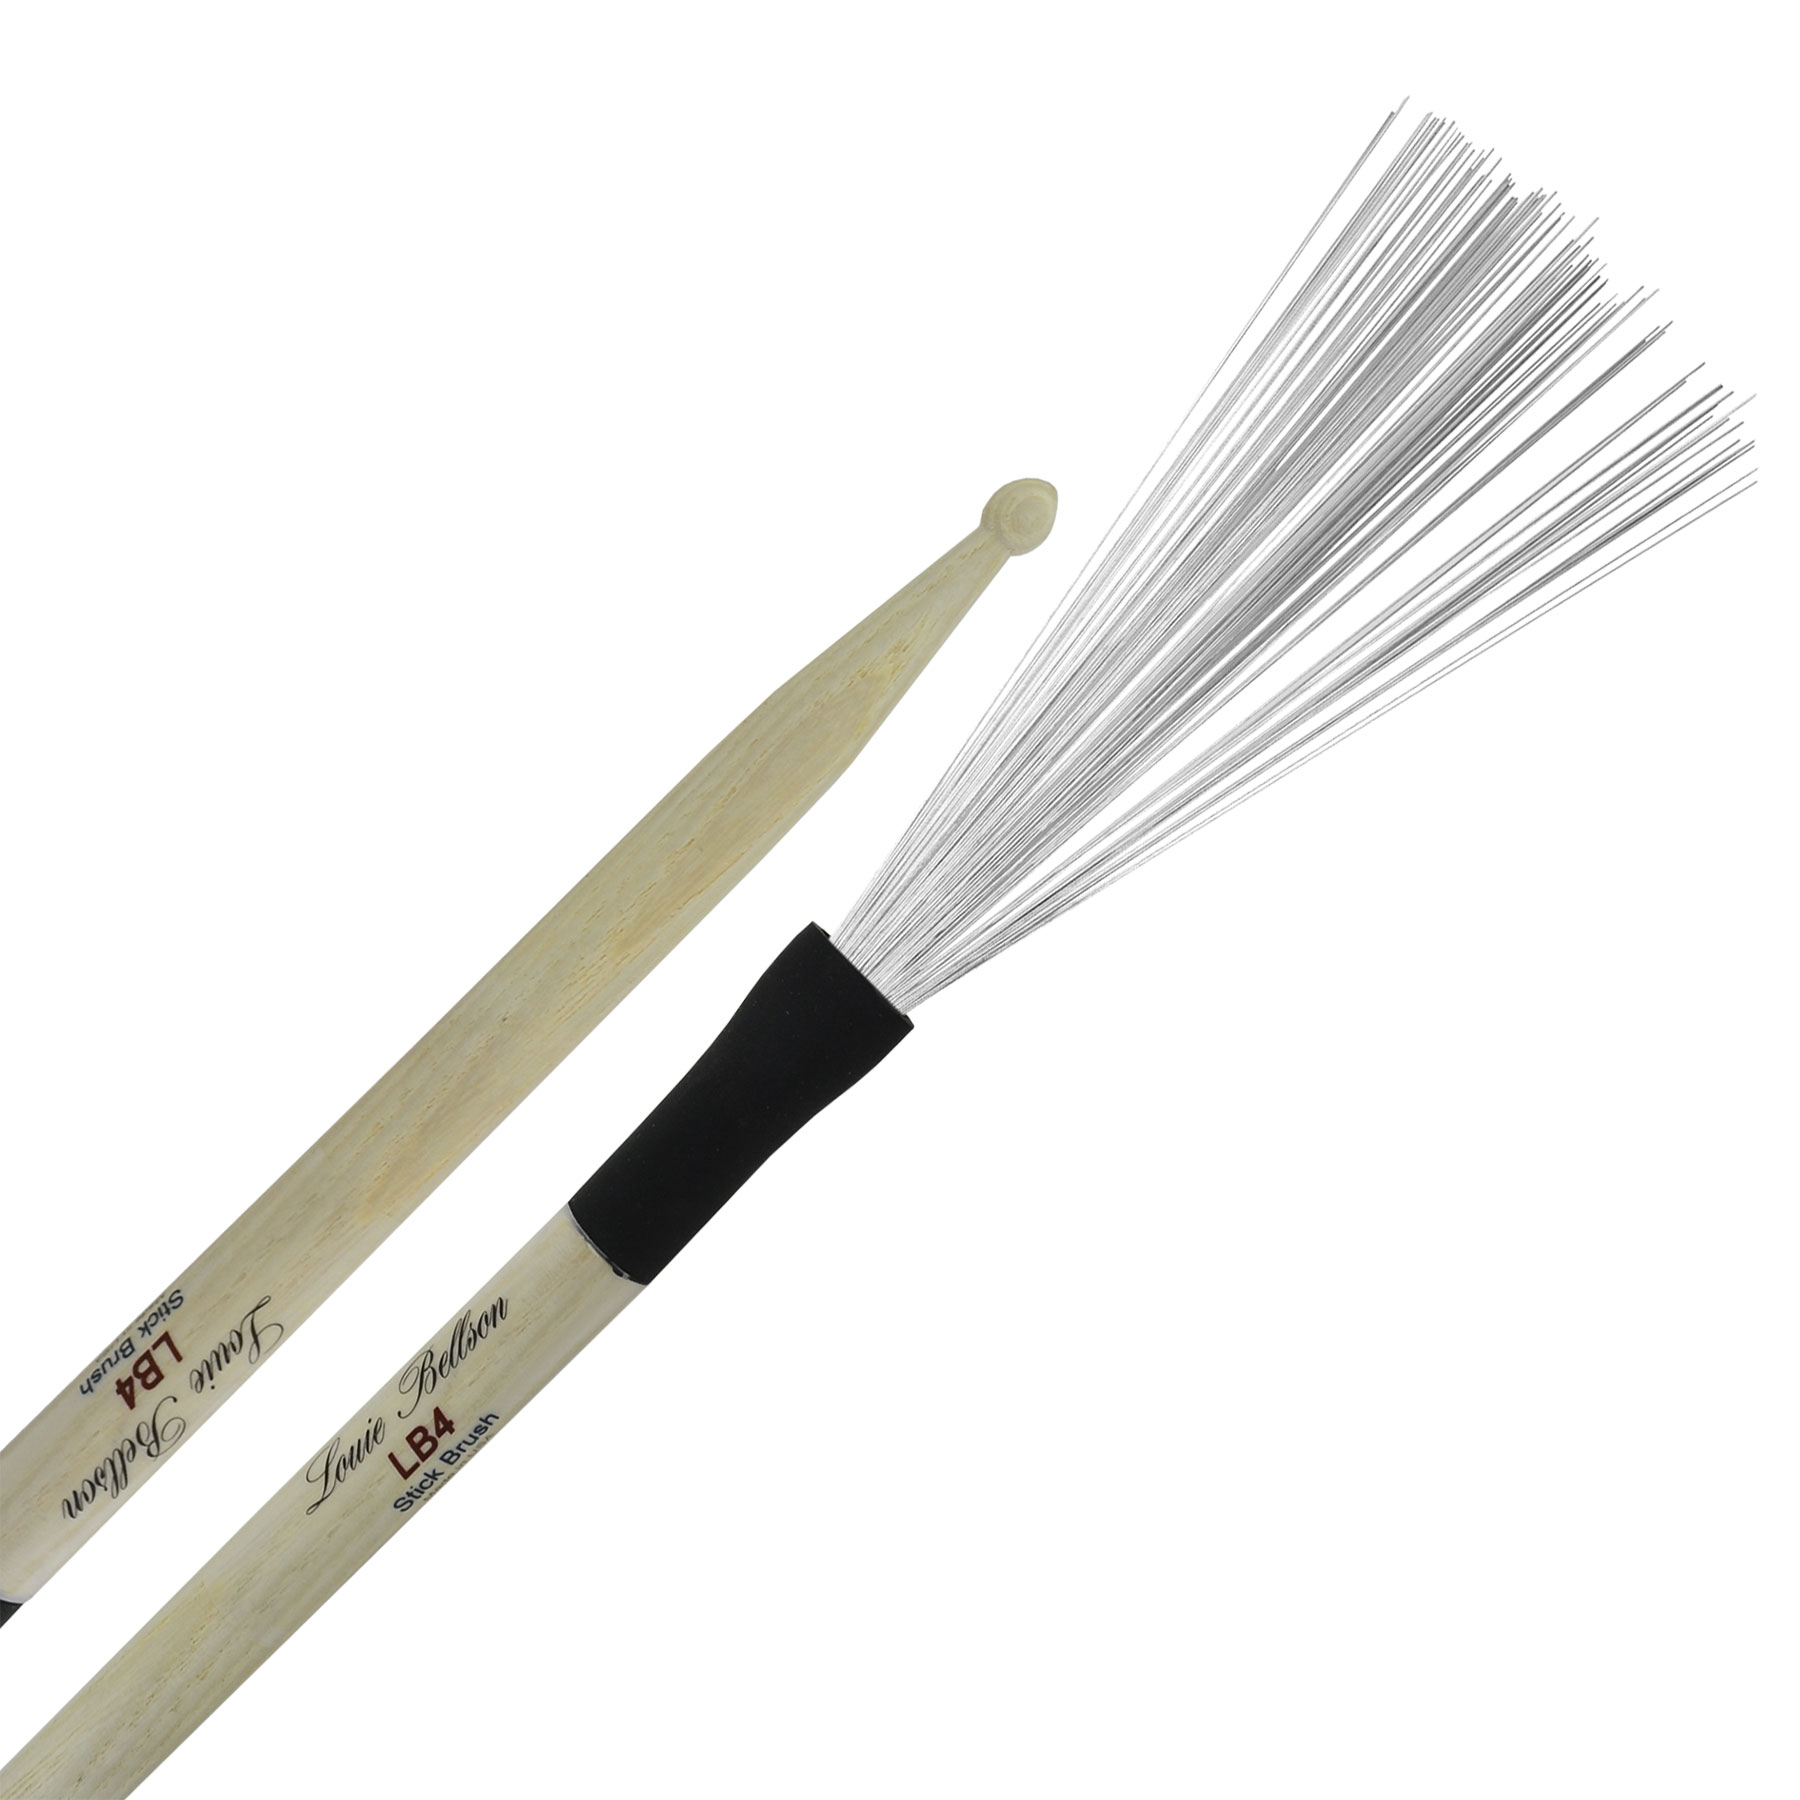 Mike Balter Stick/Brushes